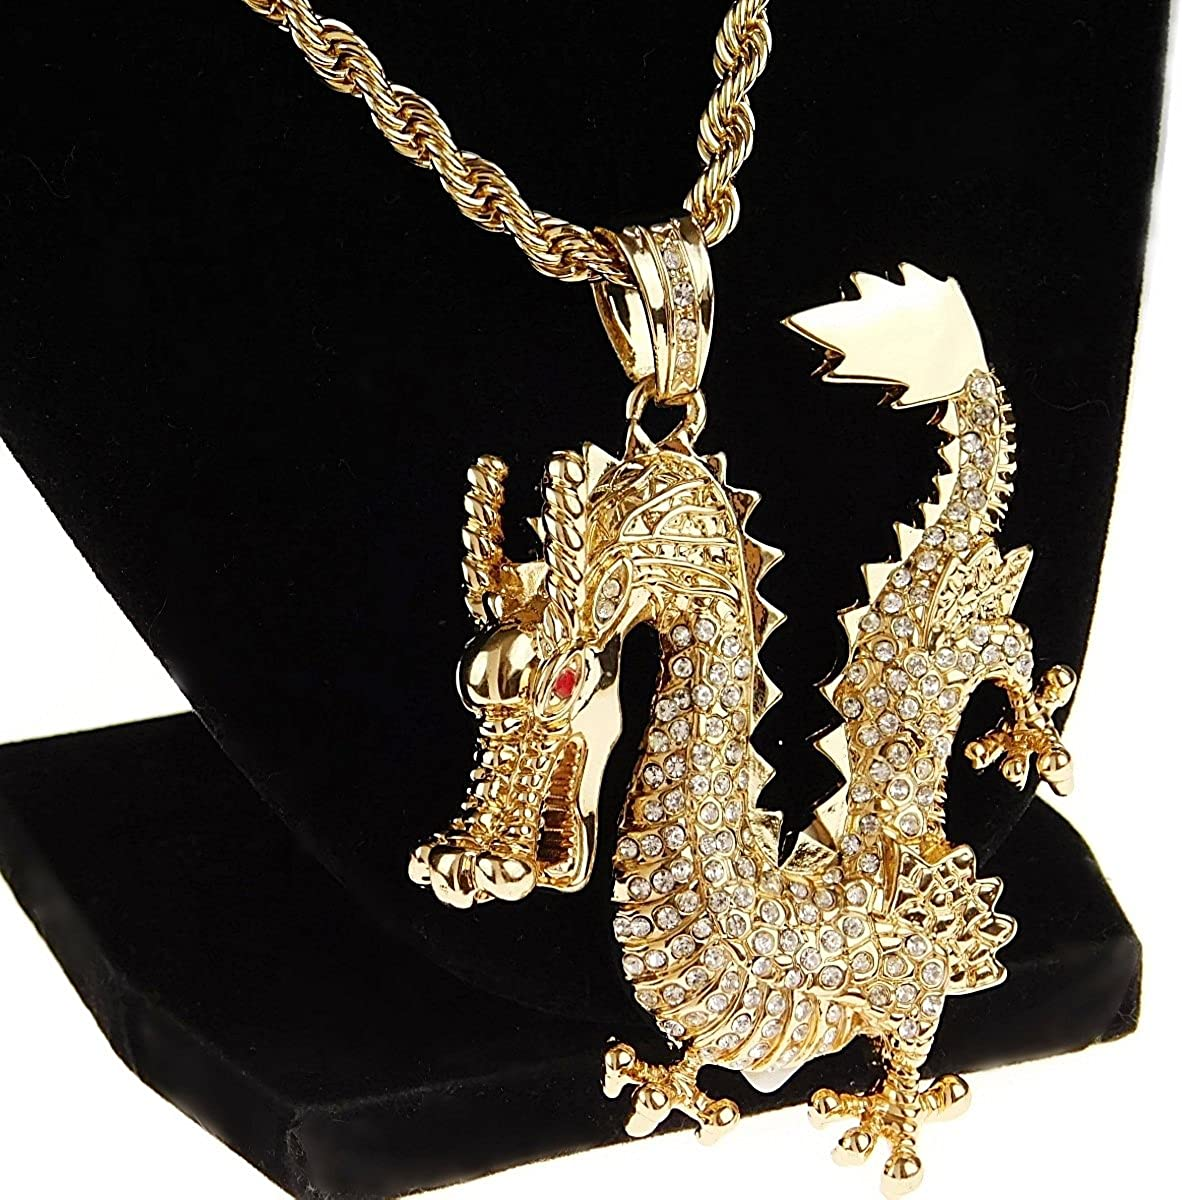 """Mens Dragon Iced Pendant Rope Chain Bling Charm Gold Finish Hip Hop Necklace 30"""" Inch x 4 mm"""